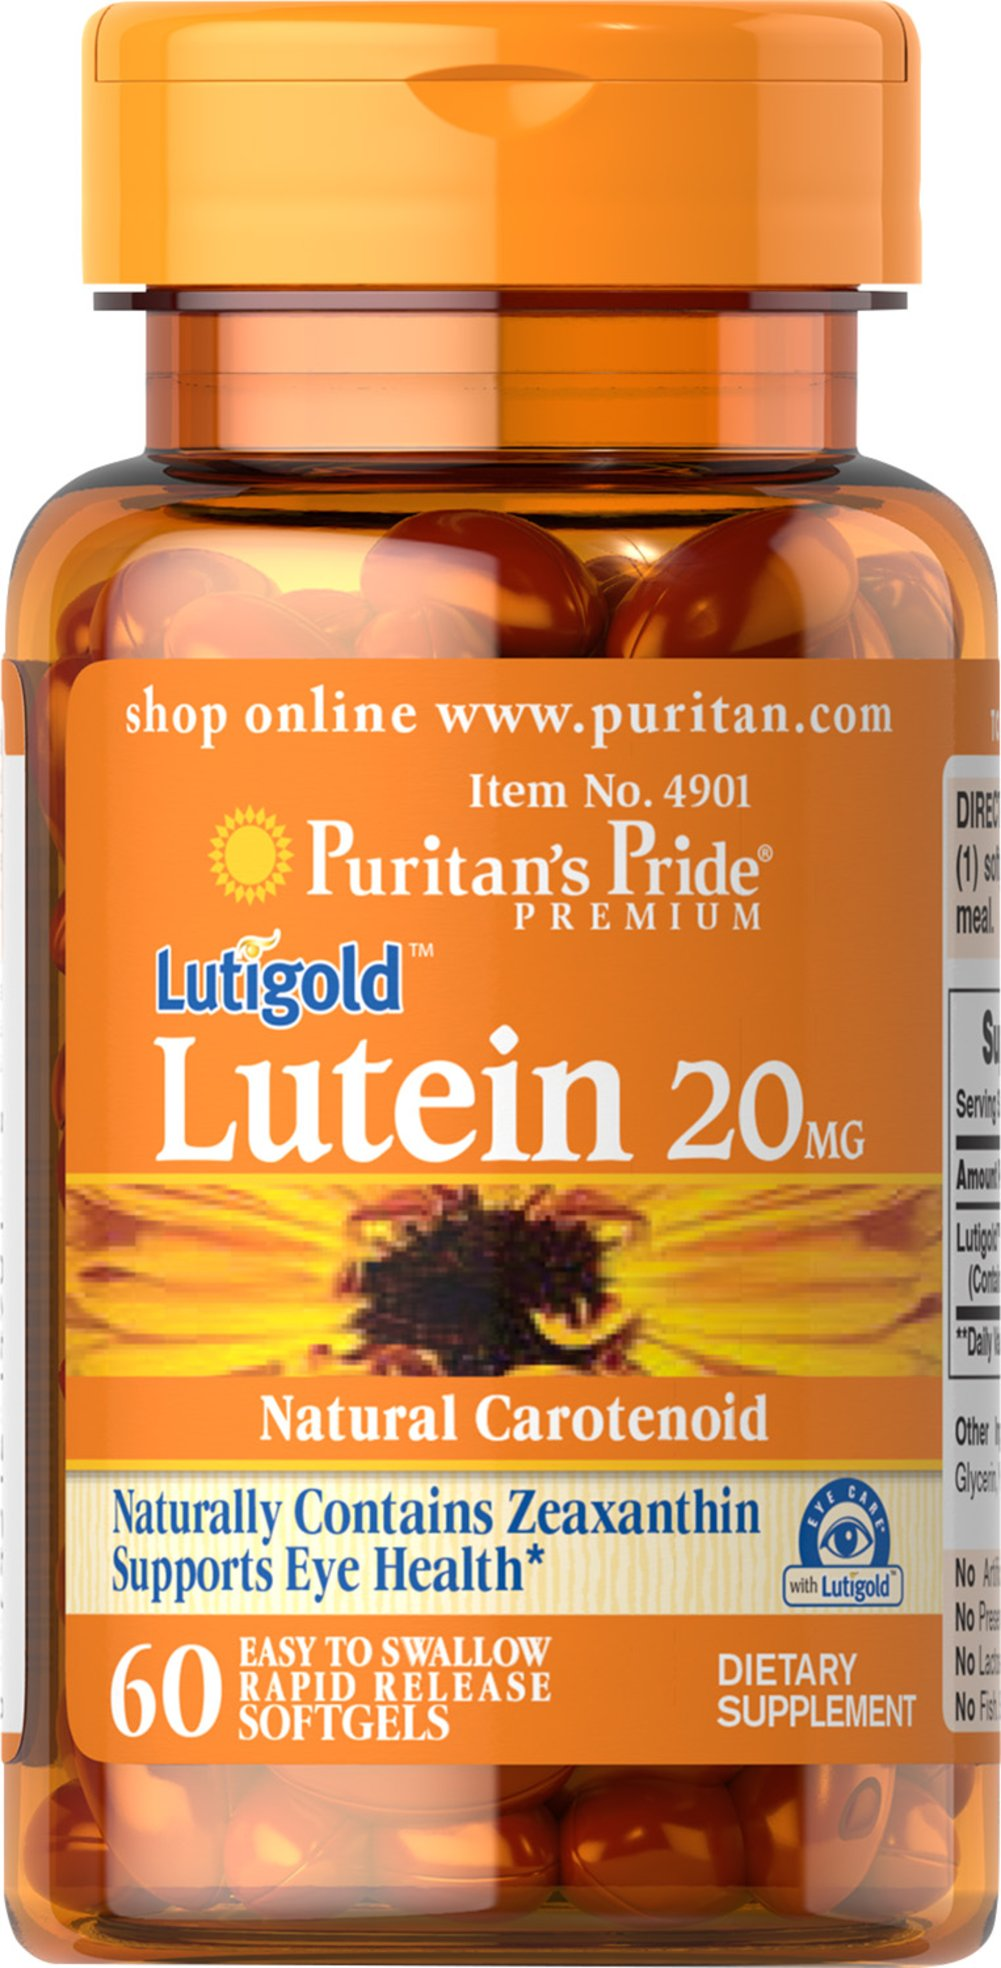 Lutein 20 mg with Zeaxanthin Thumbnail Alternate Bottle View